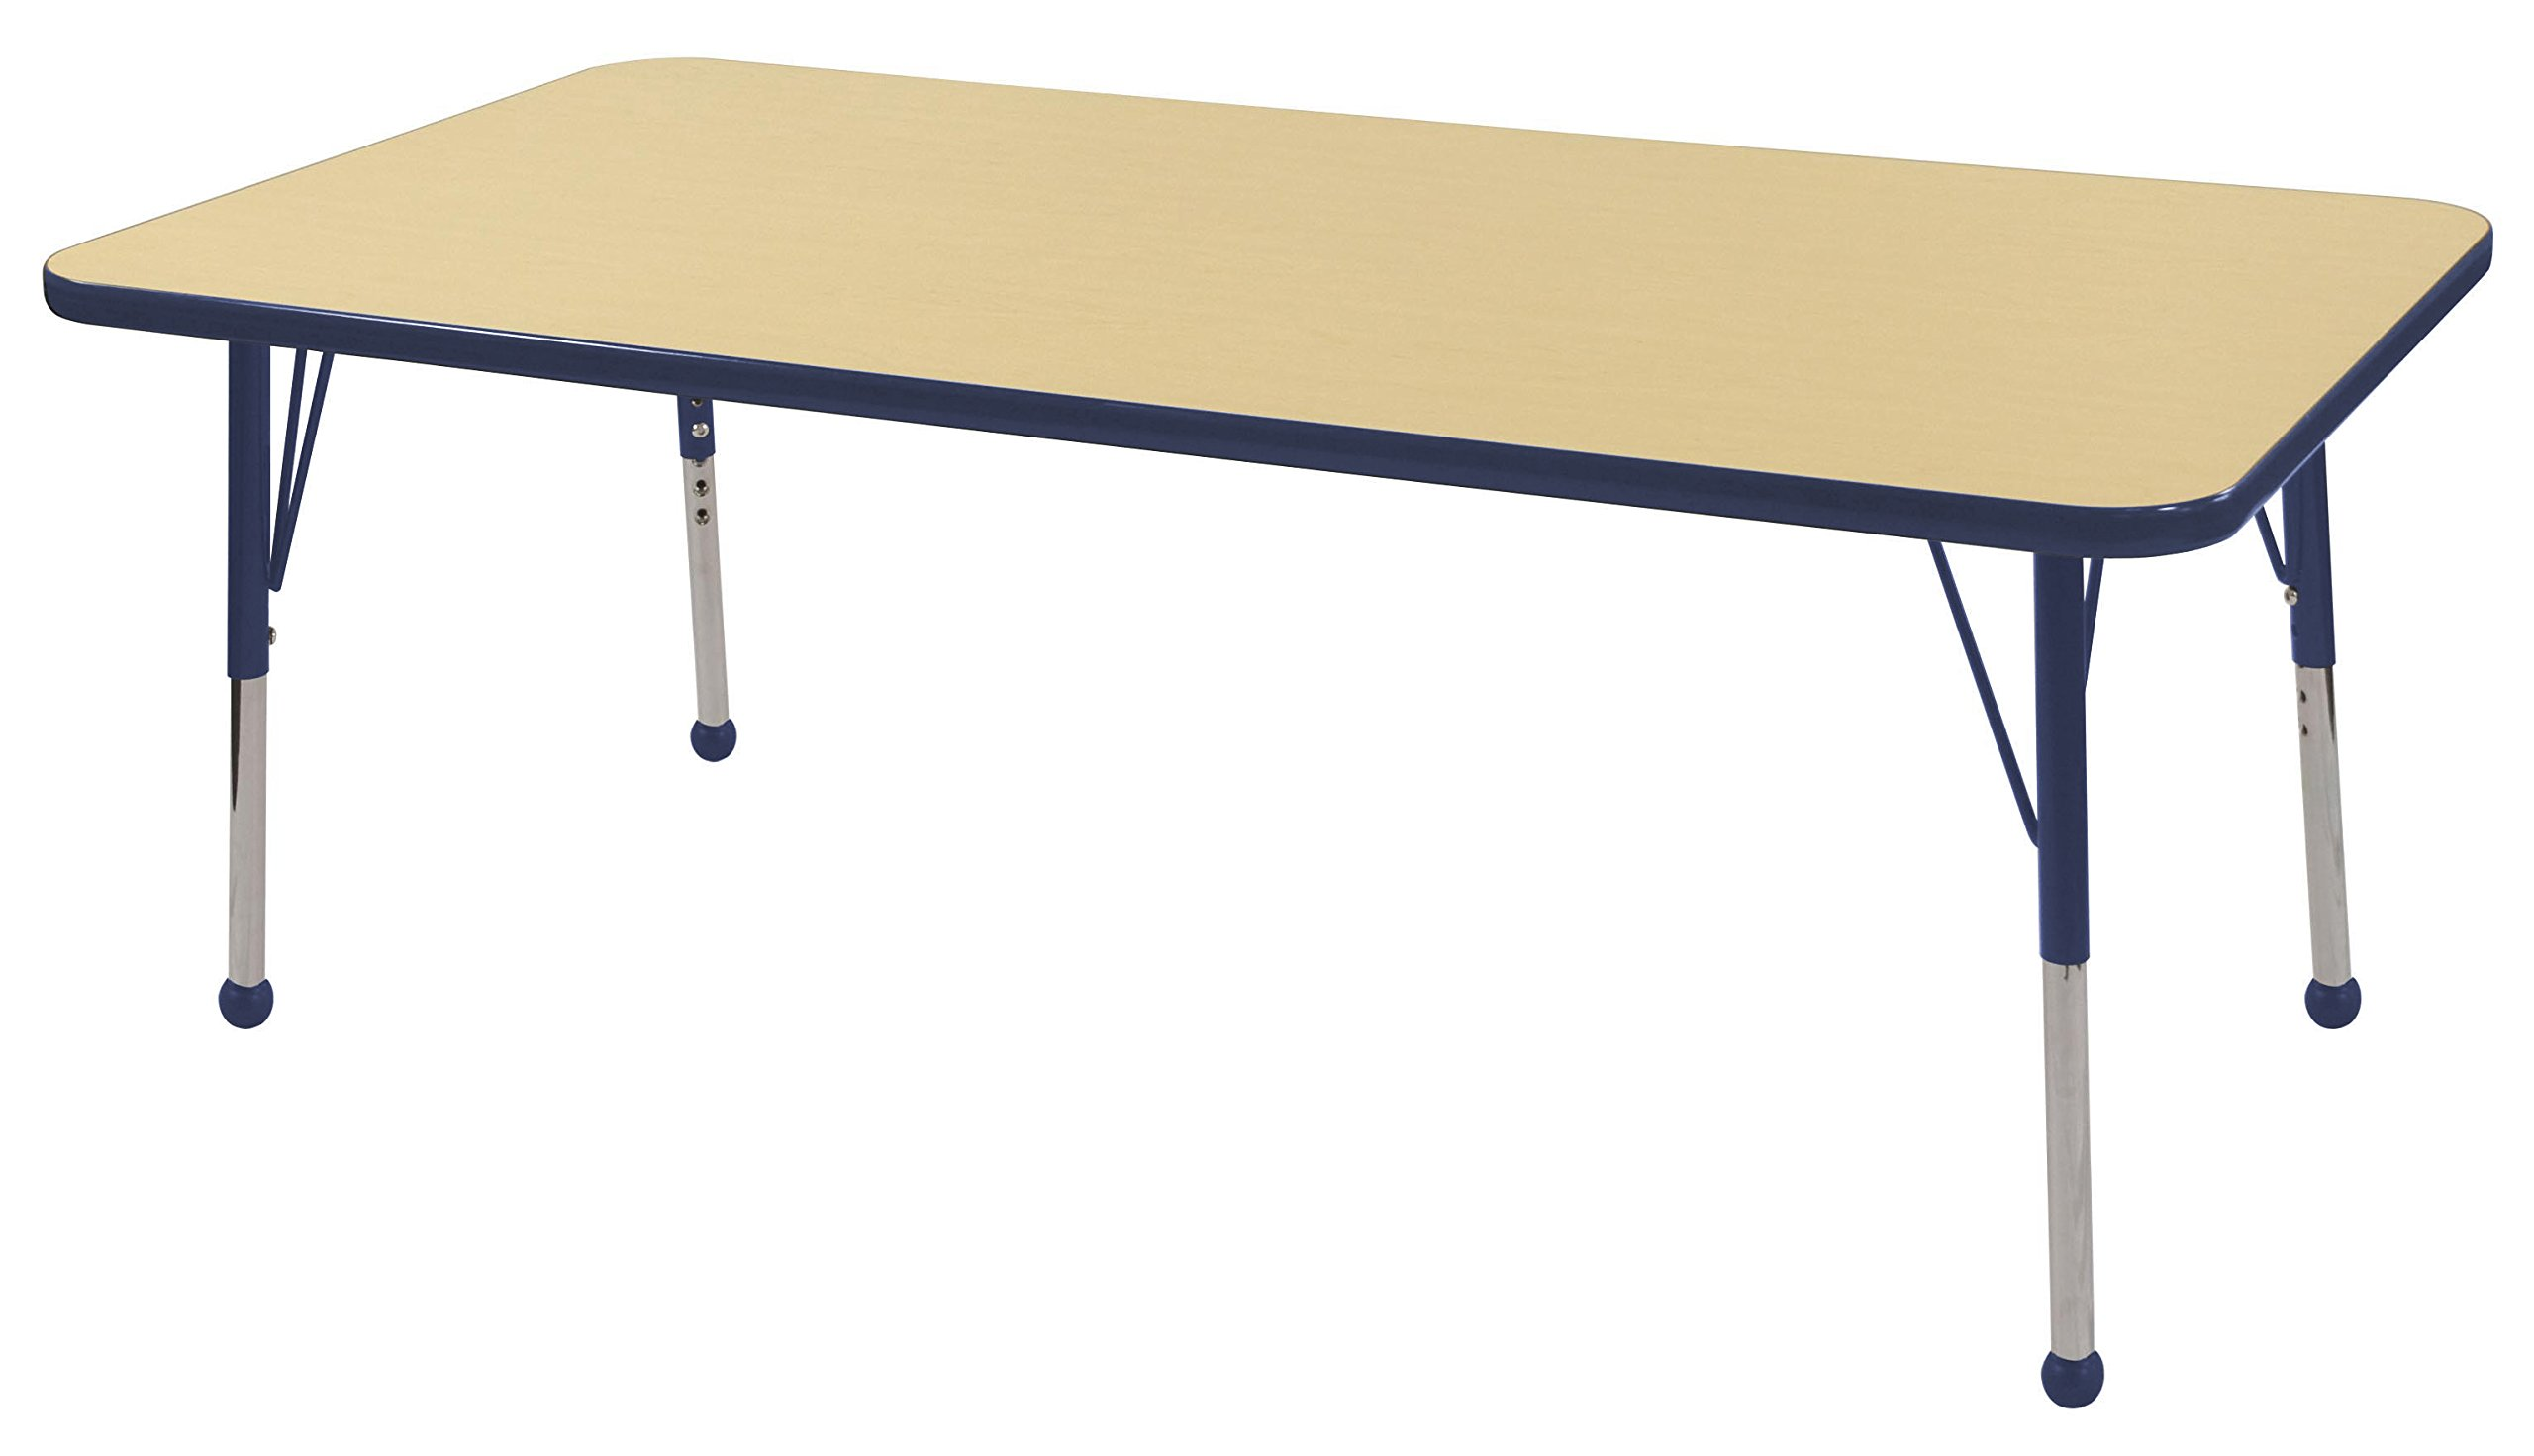 ECR4Kids T-Mold 30'' x 60'' Rectangular Activity School Table, Toddler Legs w/ Ball Glides, Adjustable Height 15-23 inch (Maple/Navy)